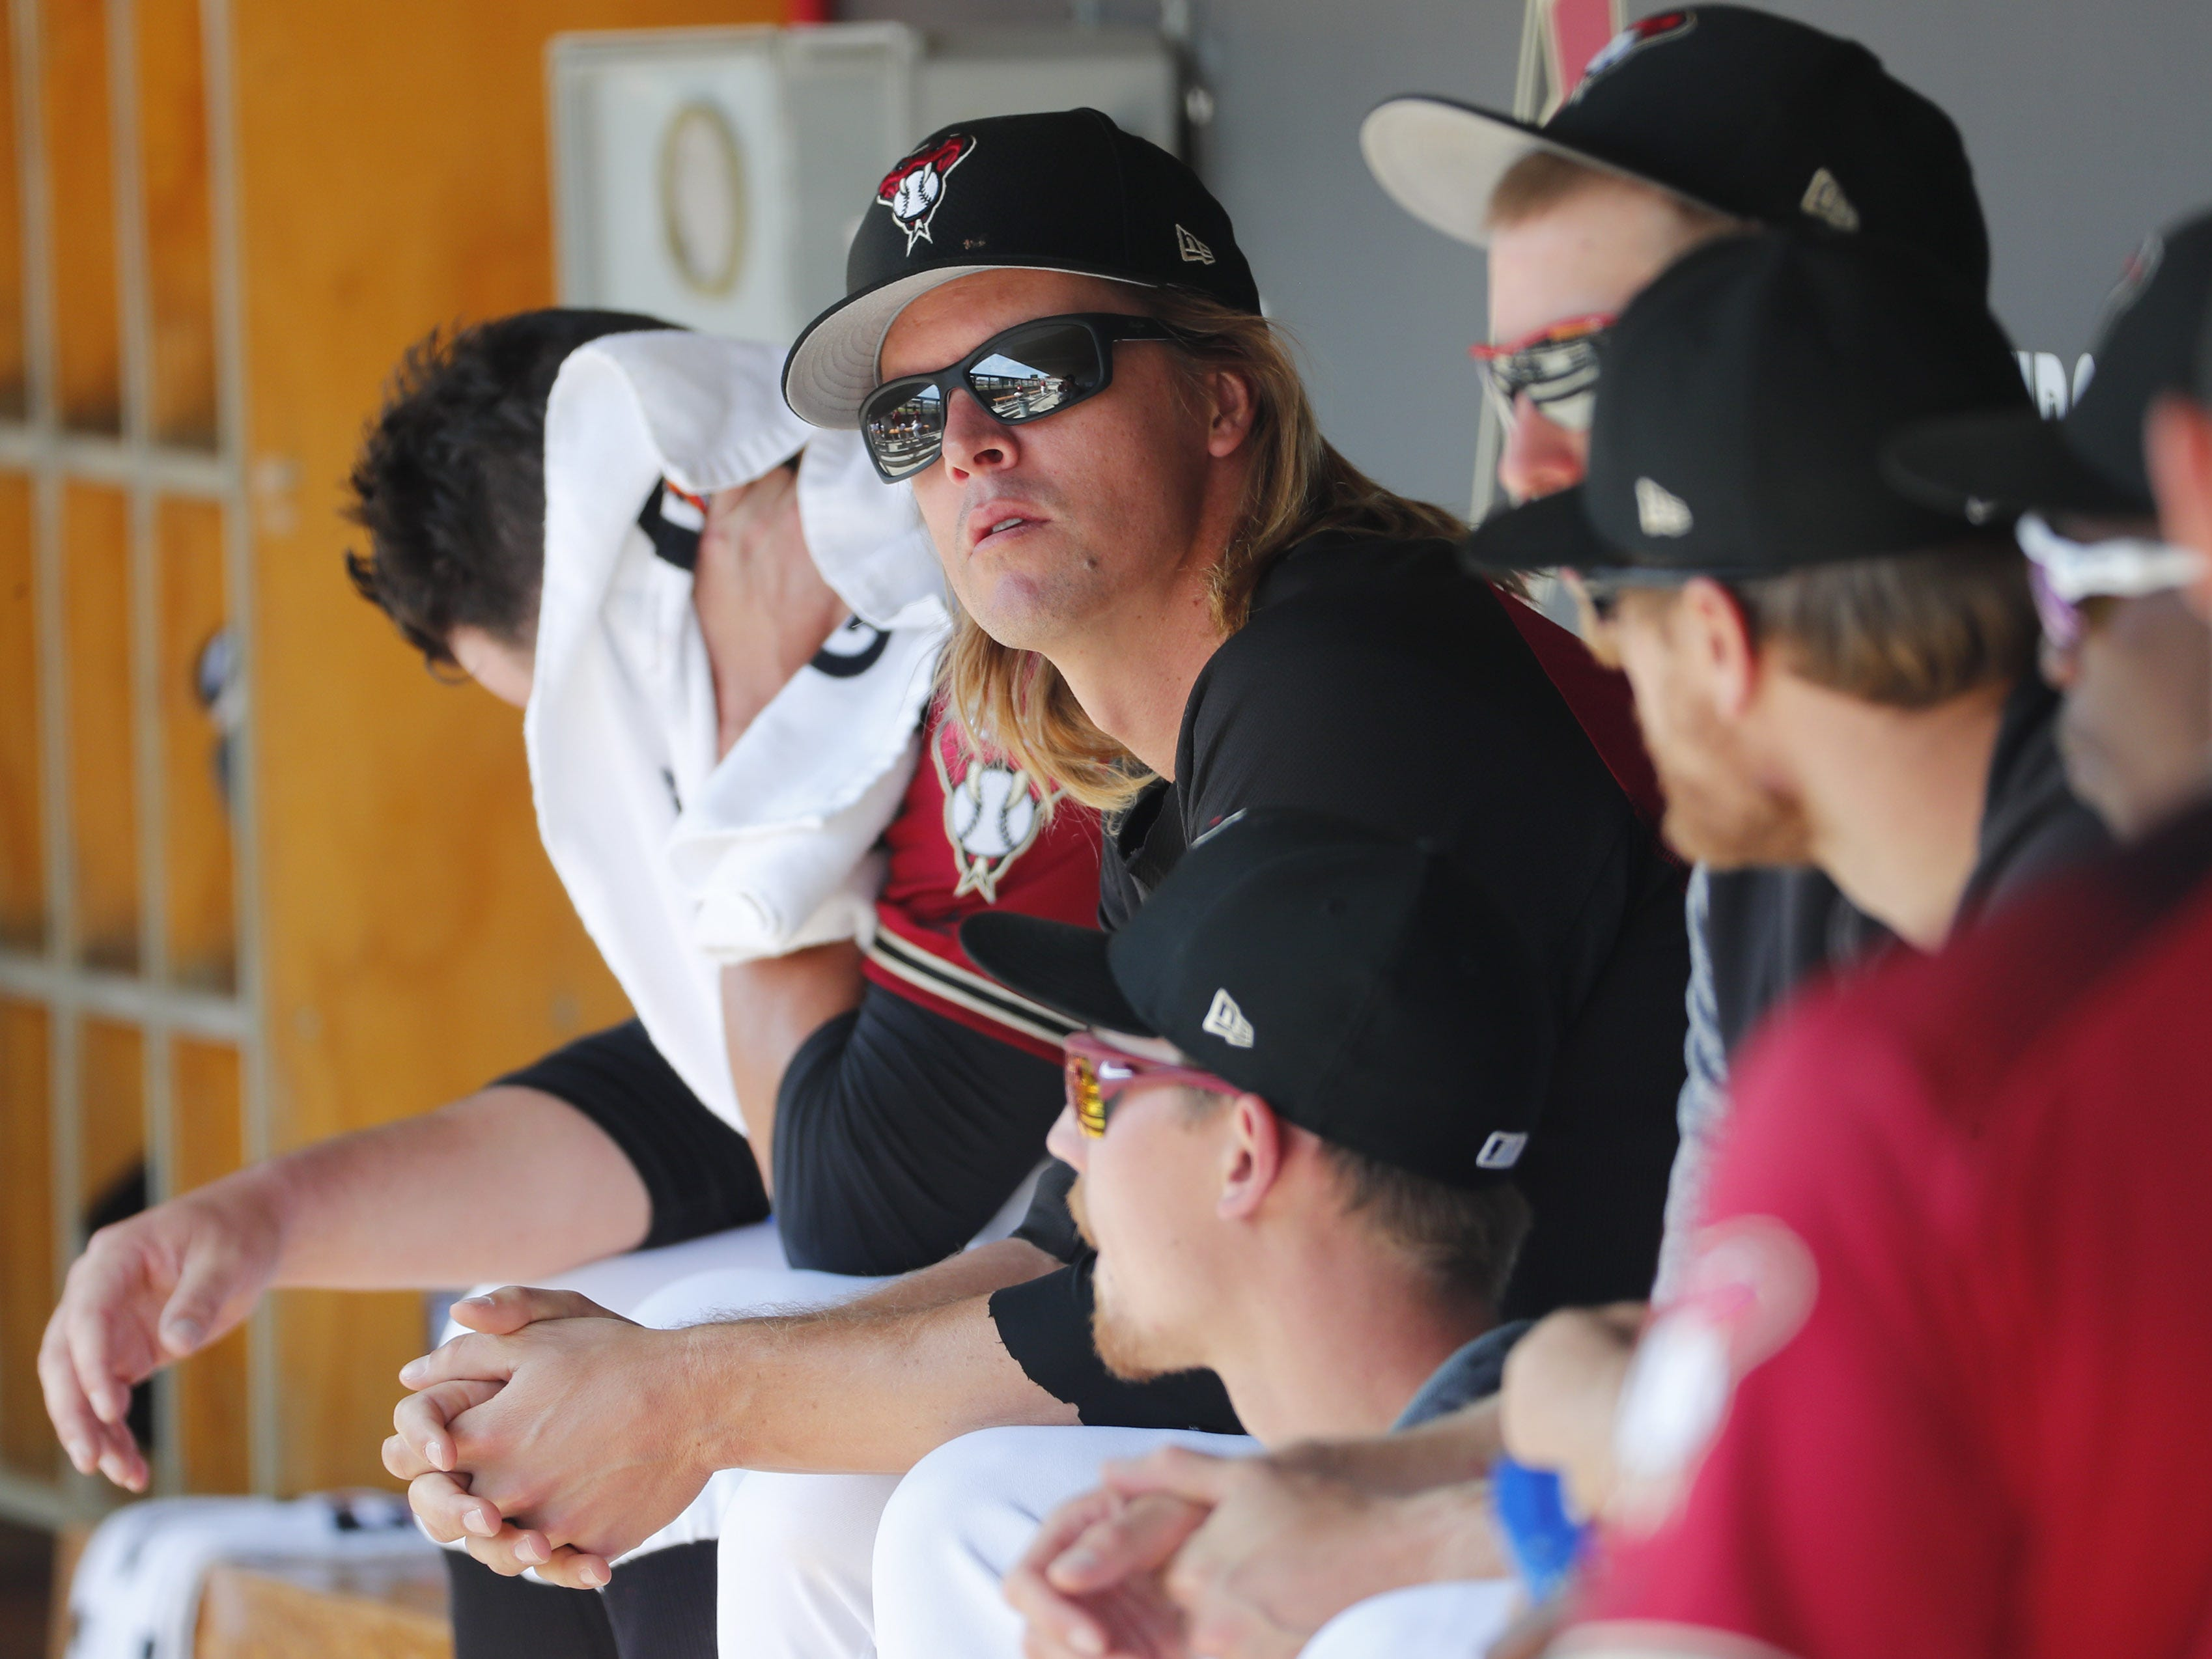 Arizona Diamondbacks starting pitcher Zack Greinke (21) watches a game against the Milwaukee Brewers during spring training at Salt River Fields at Talking Stick March 24, 2019.